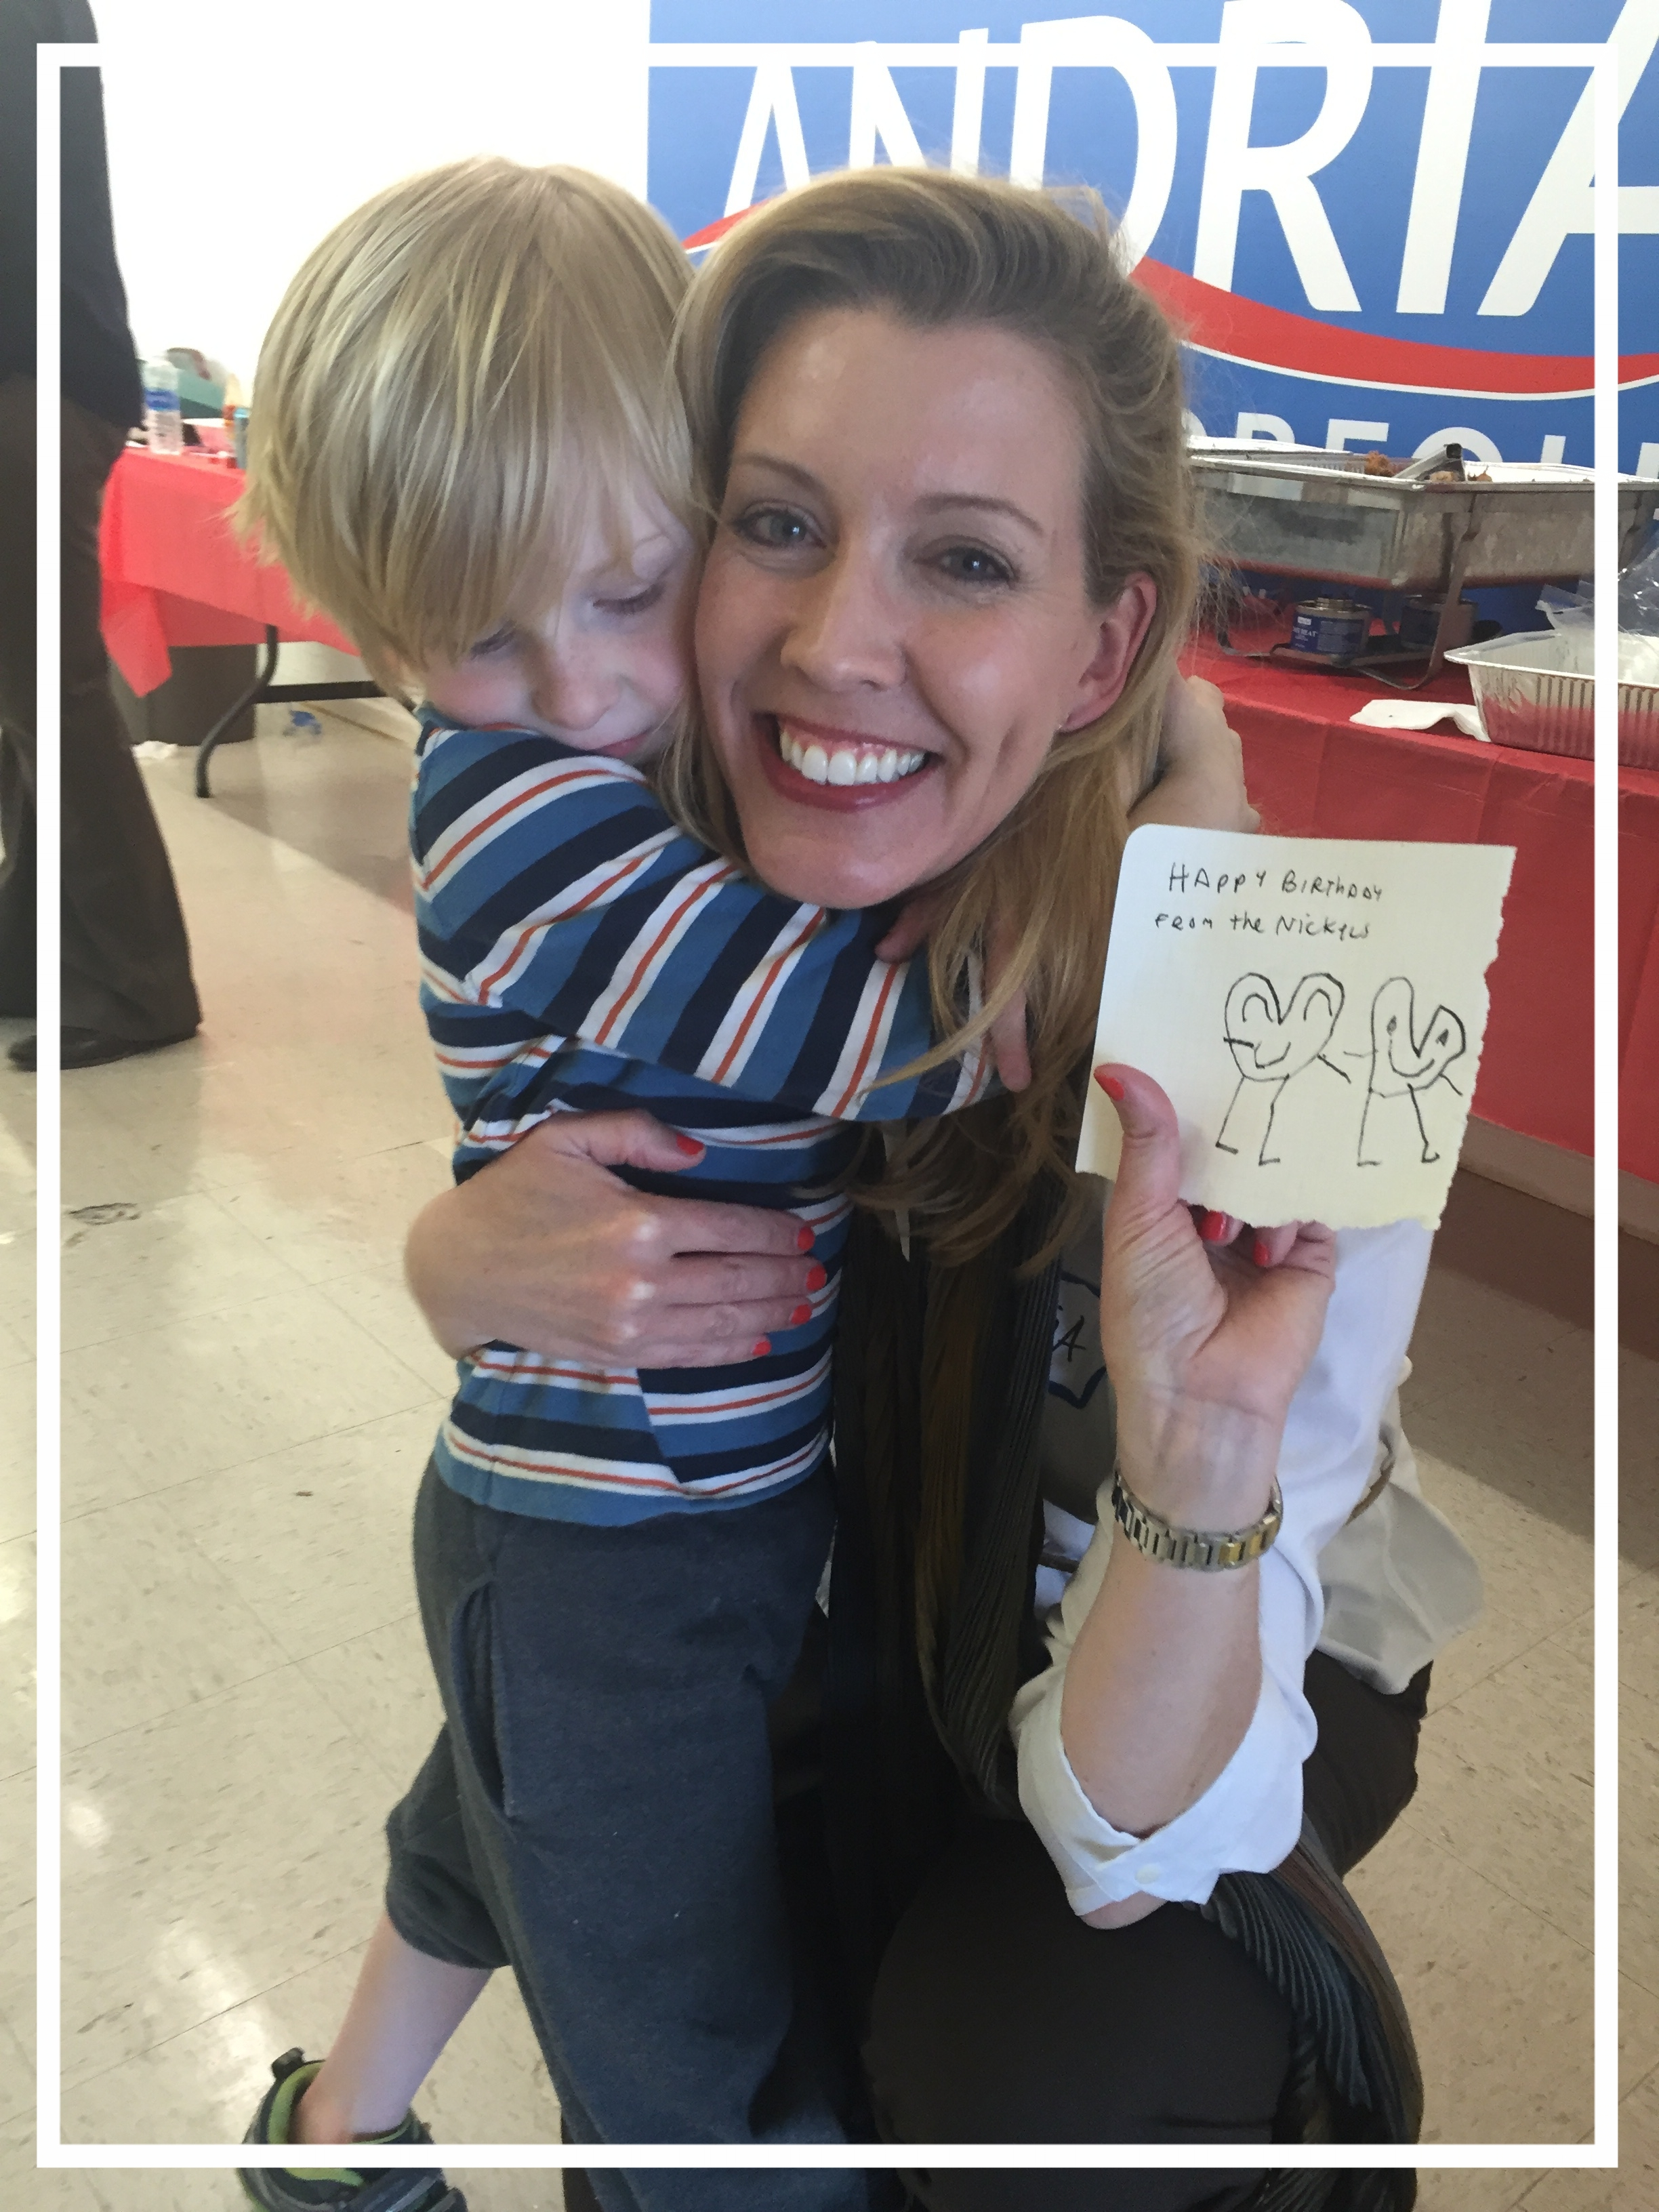 One of my favorite young supporters